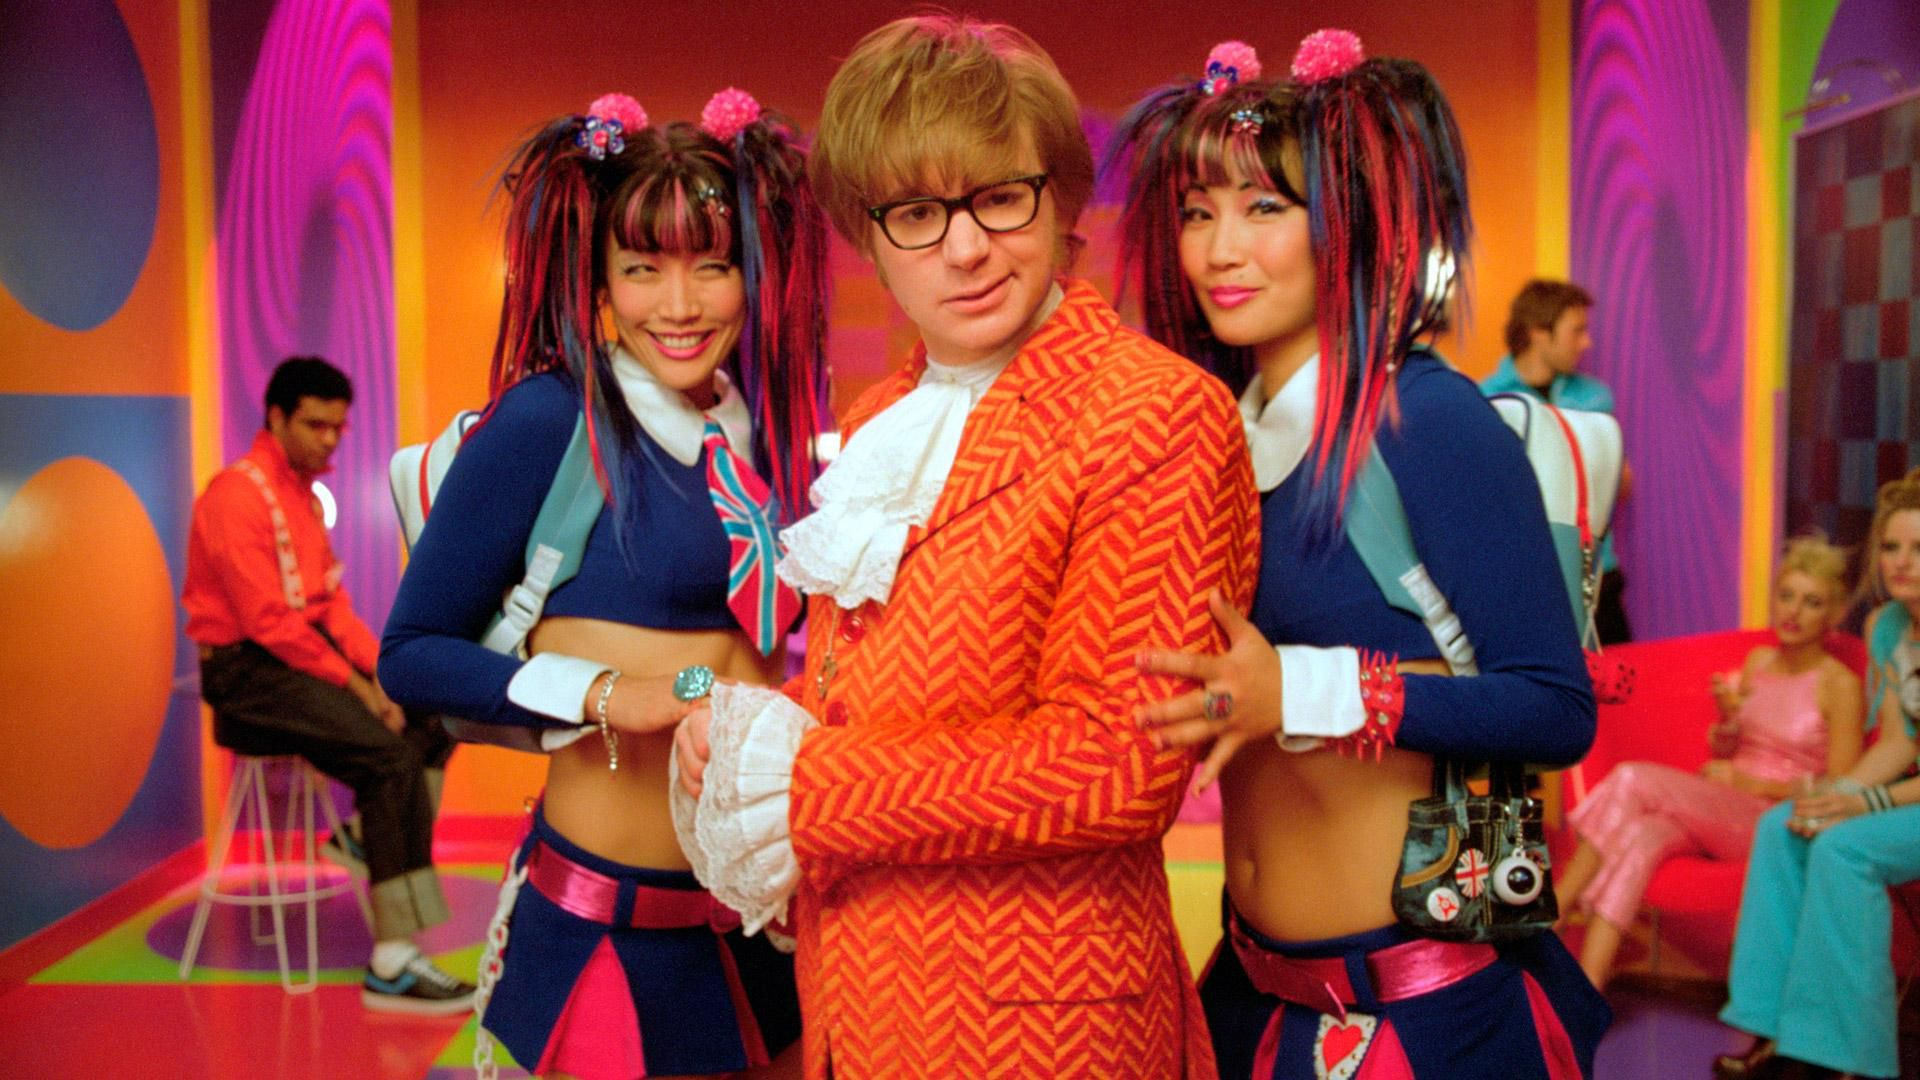 Austin Powers Wallpapers